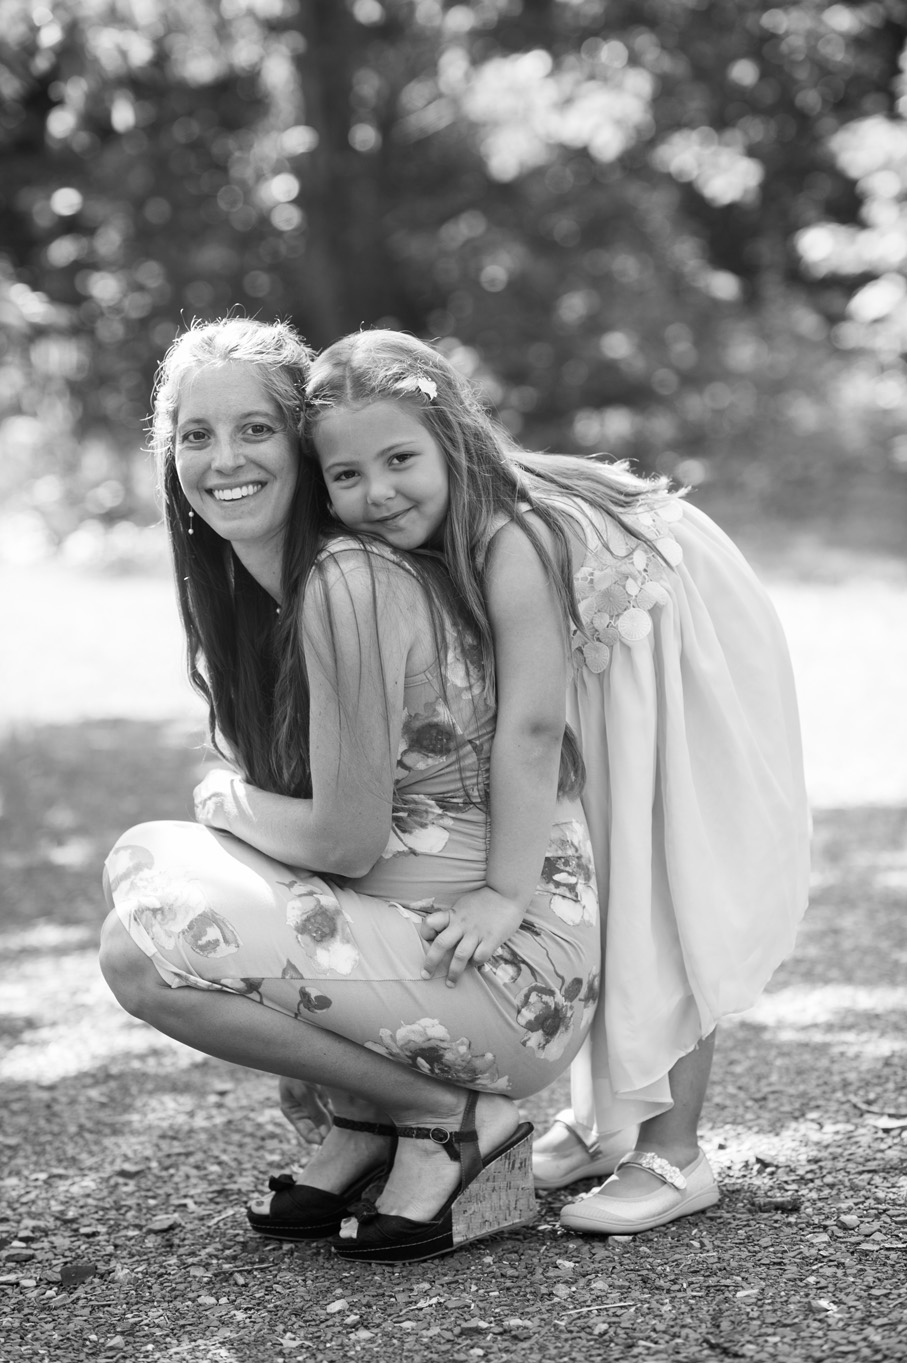 mother and daughter portrait by Erin Borzellino in Pennsylvania